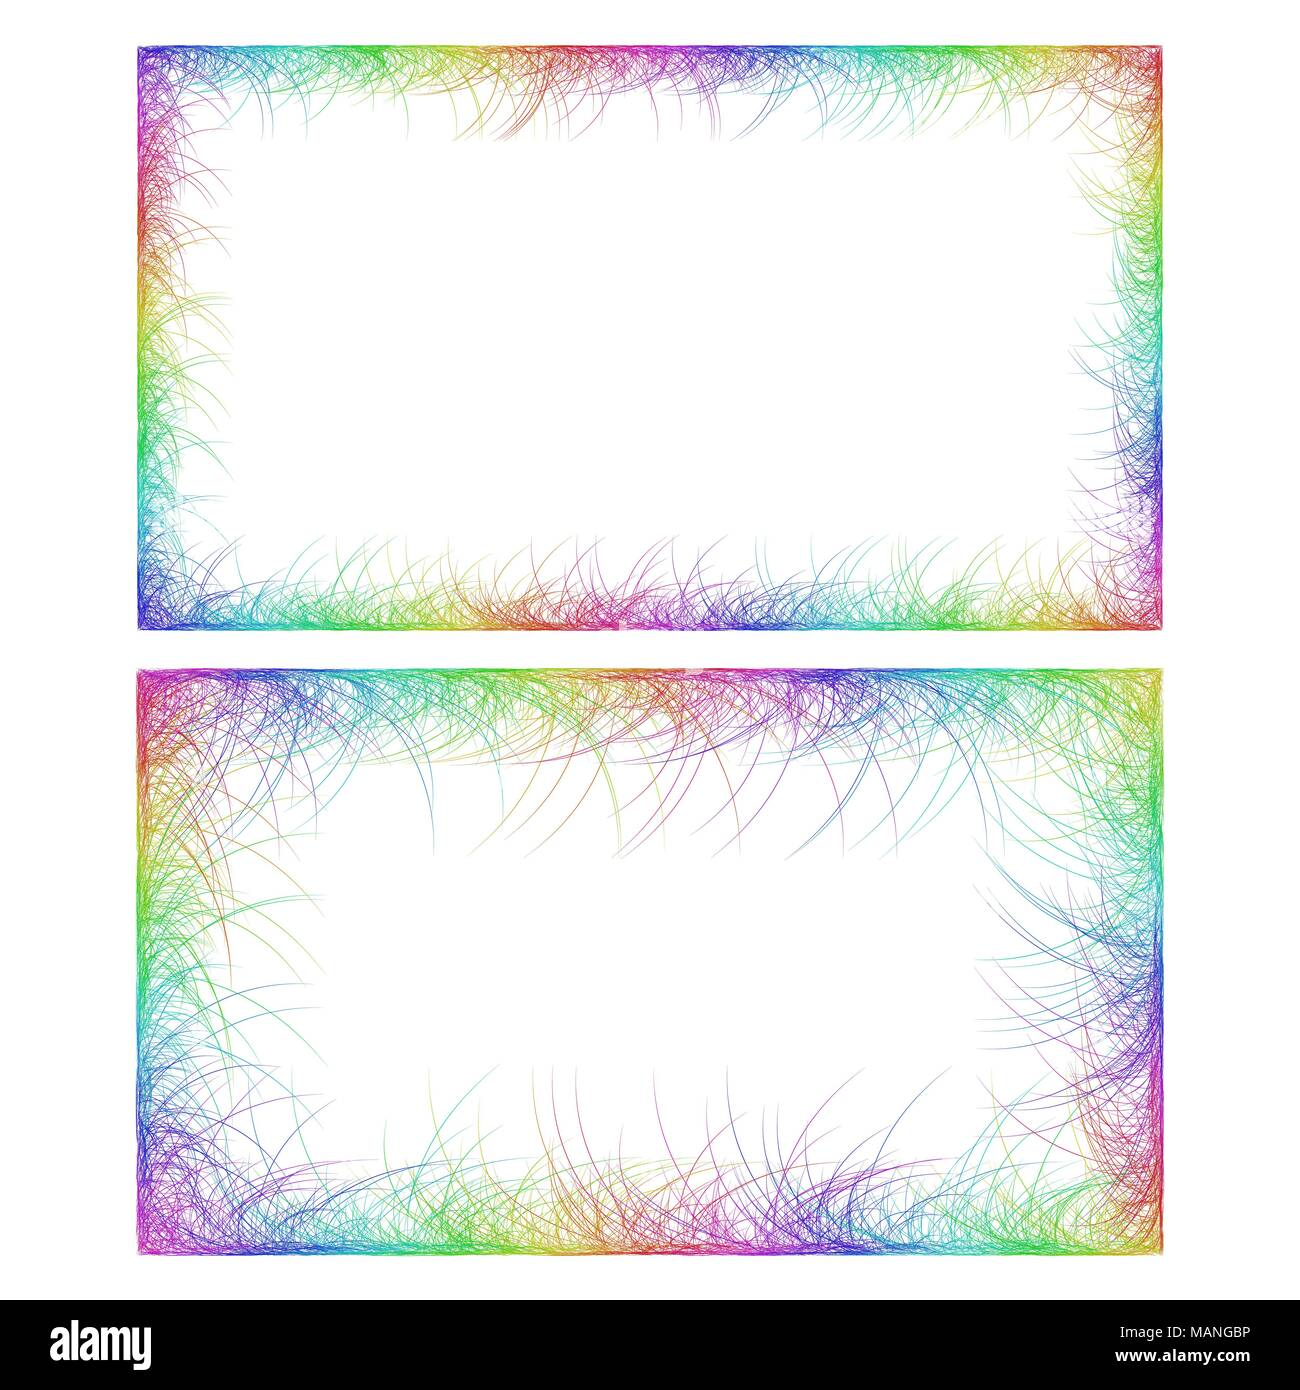 Business card border templates in rainbow colors stock vector art business card border templates in rainbow colors cheaphphosting